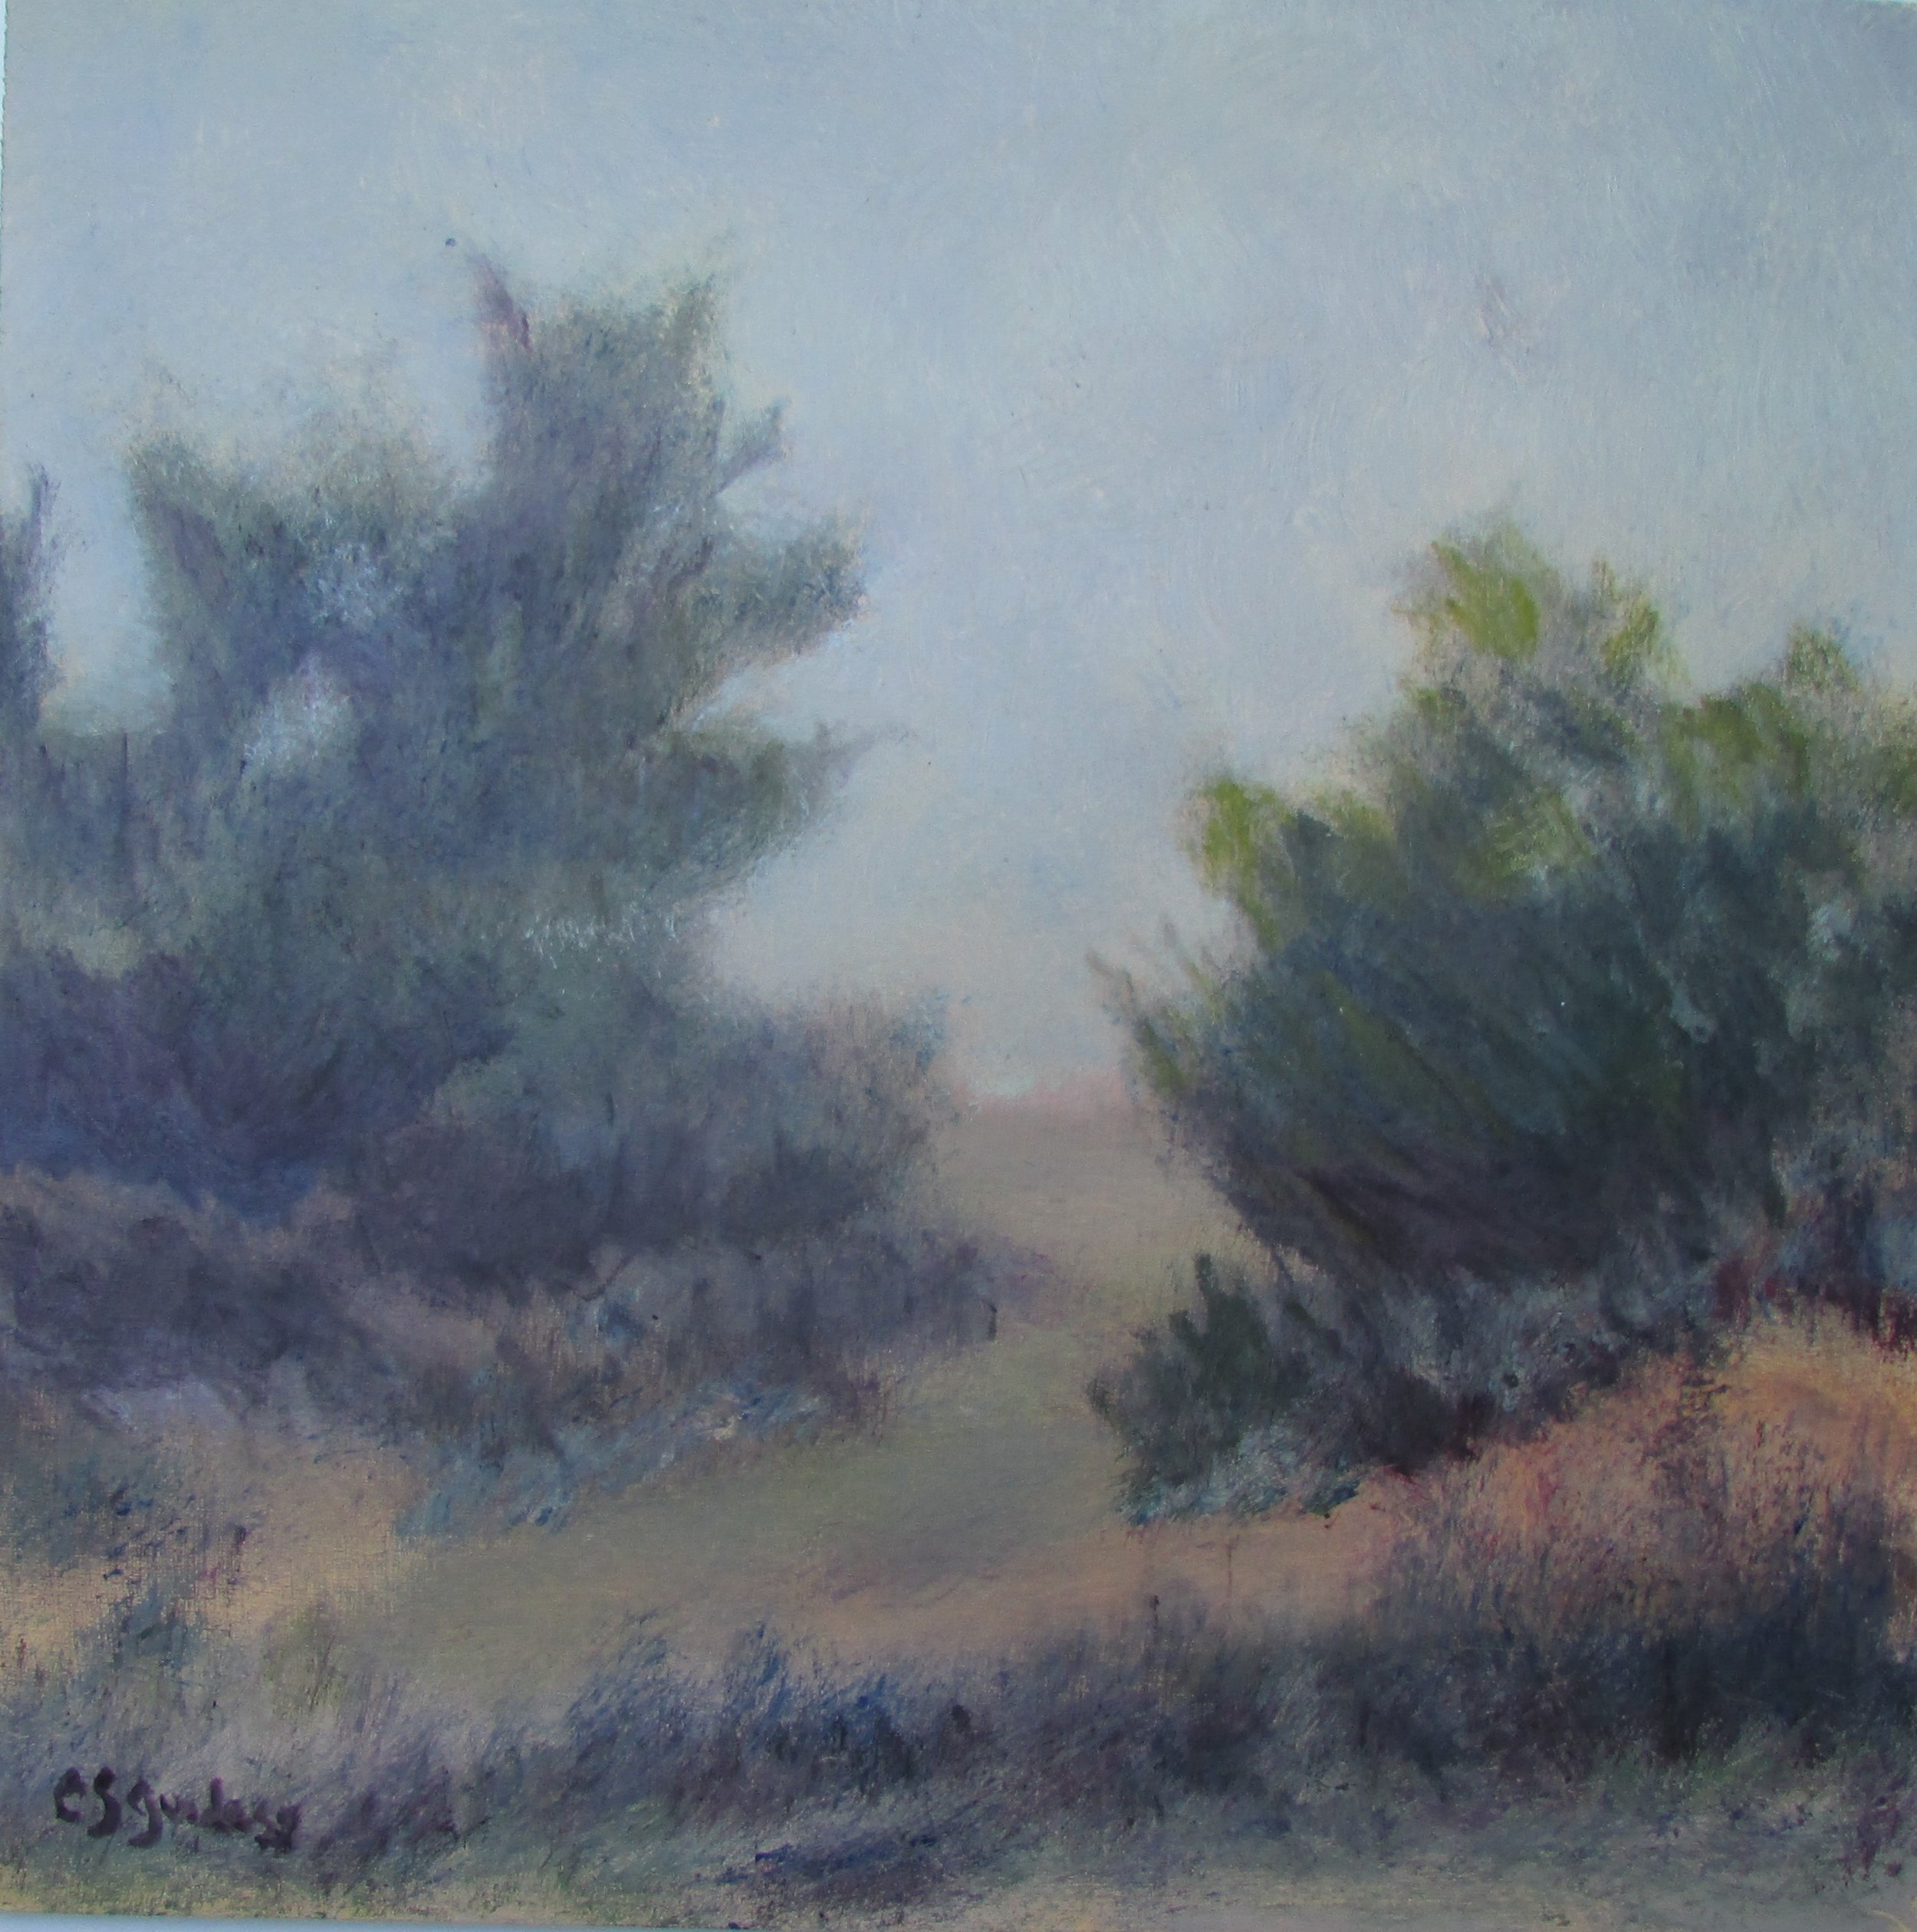 Path Through Mist 12x12 Oil $225